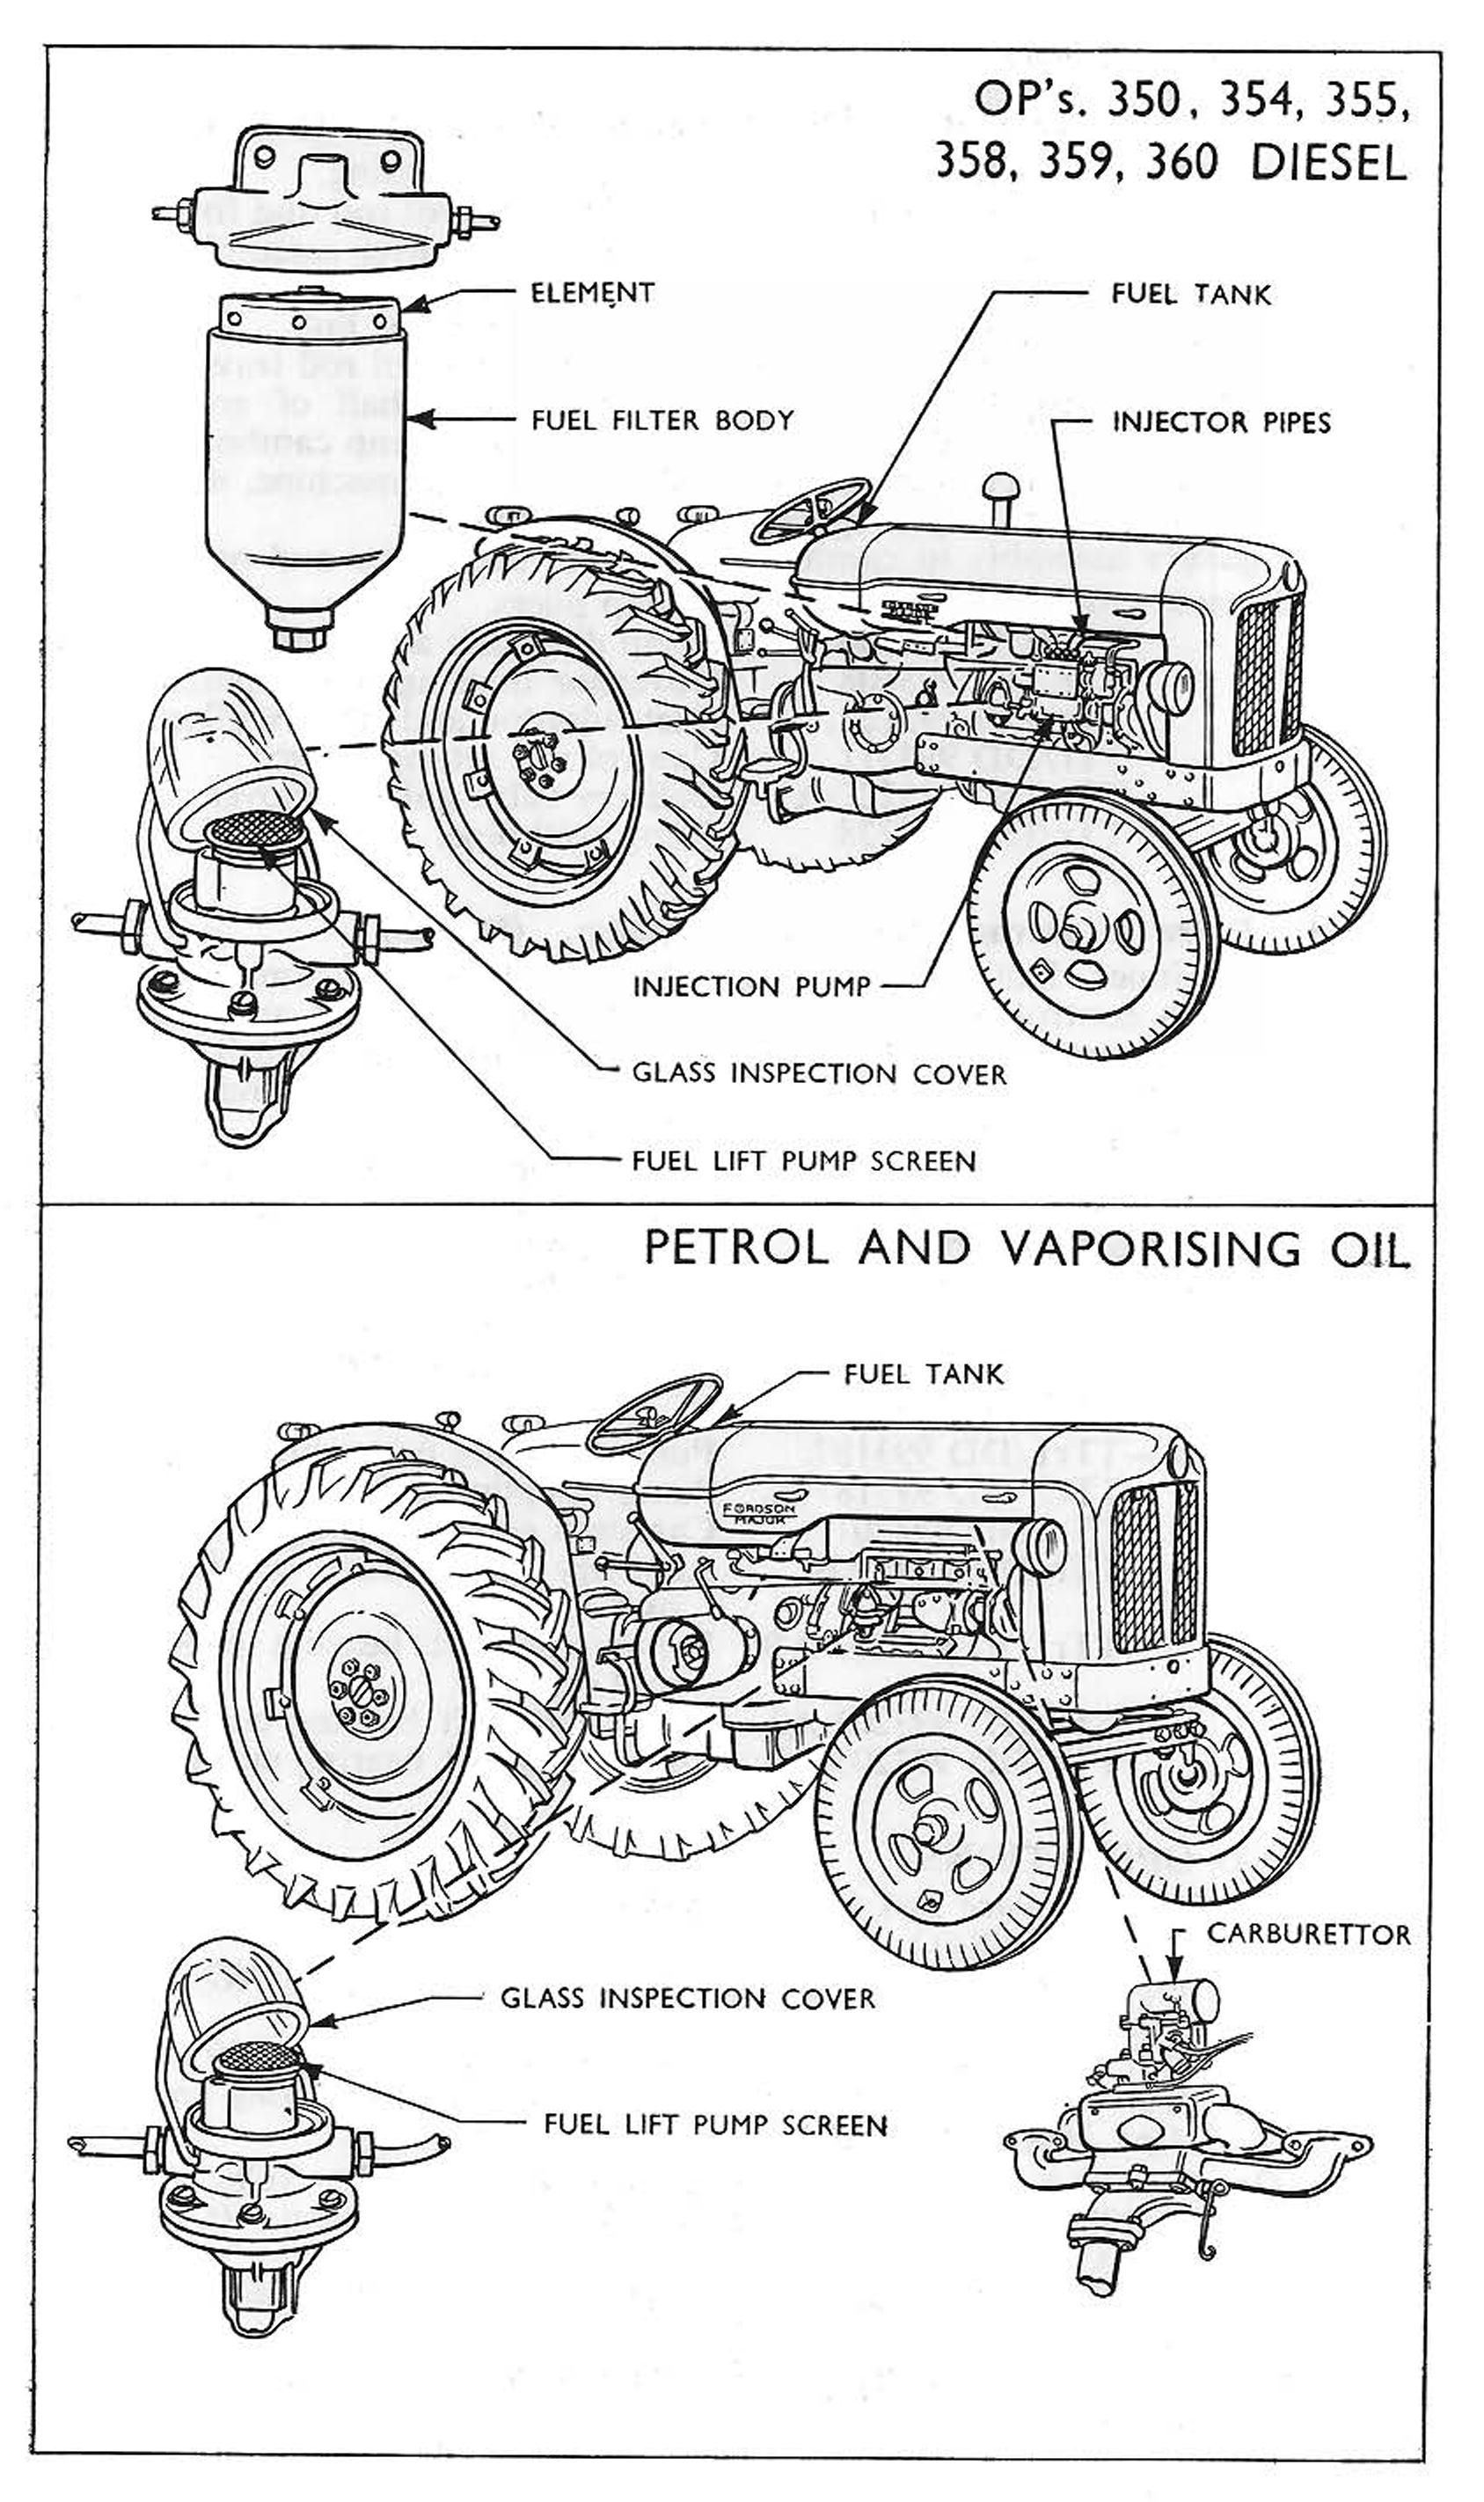 Fordson New fuel systems Fordson manuals can be found here